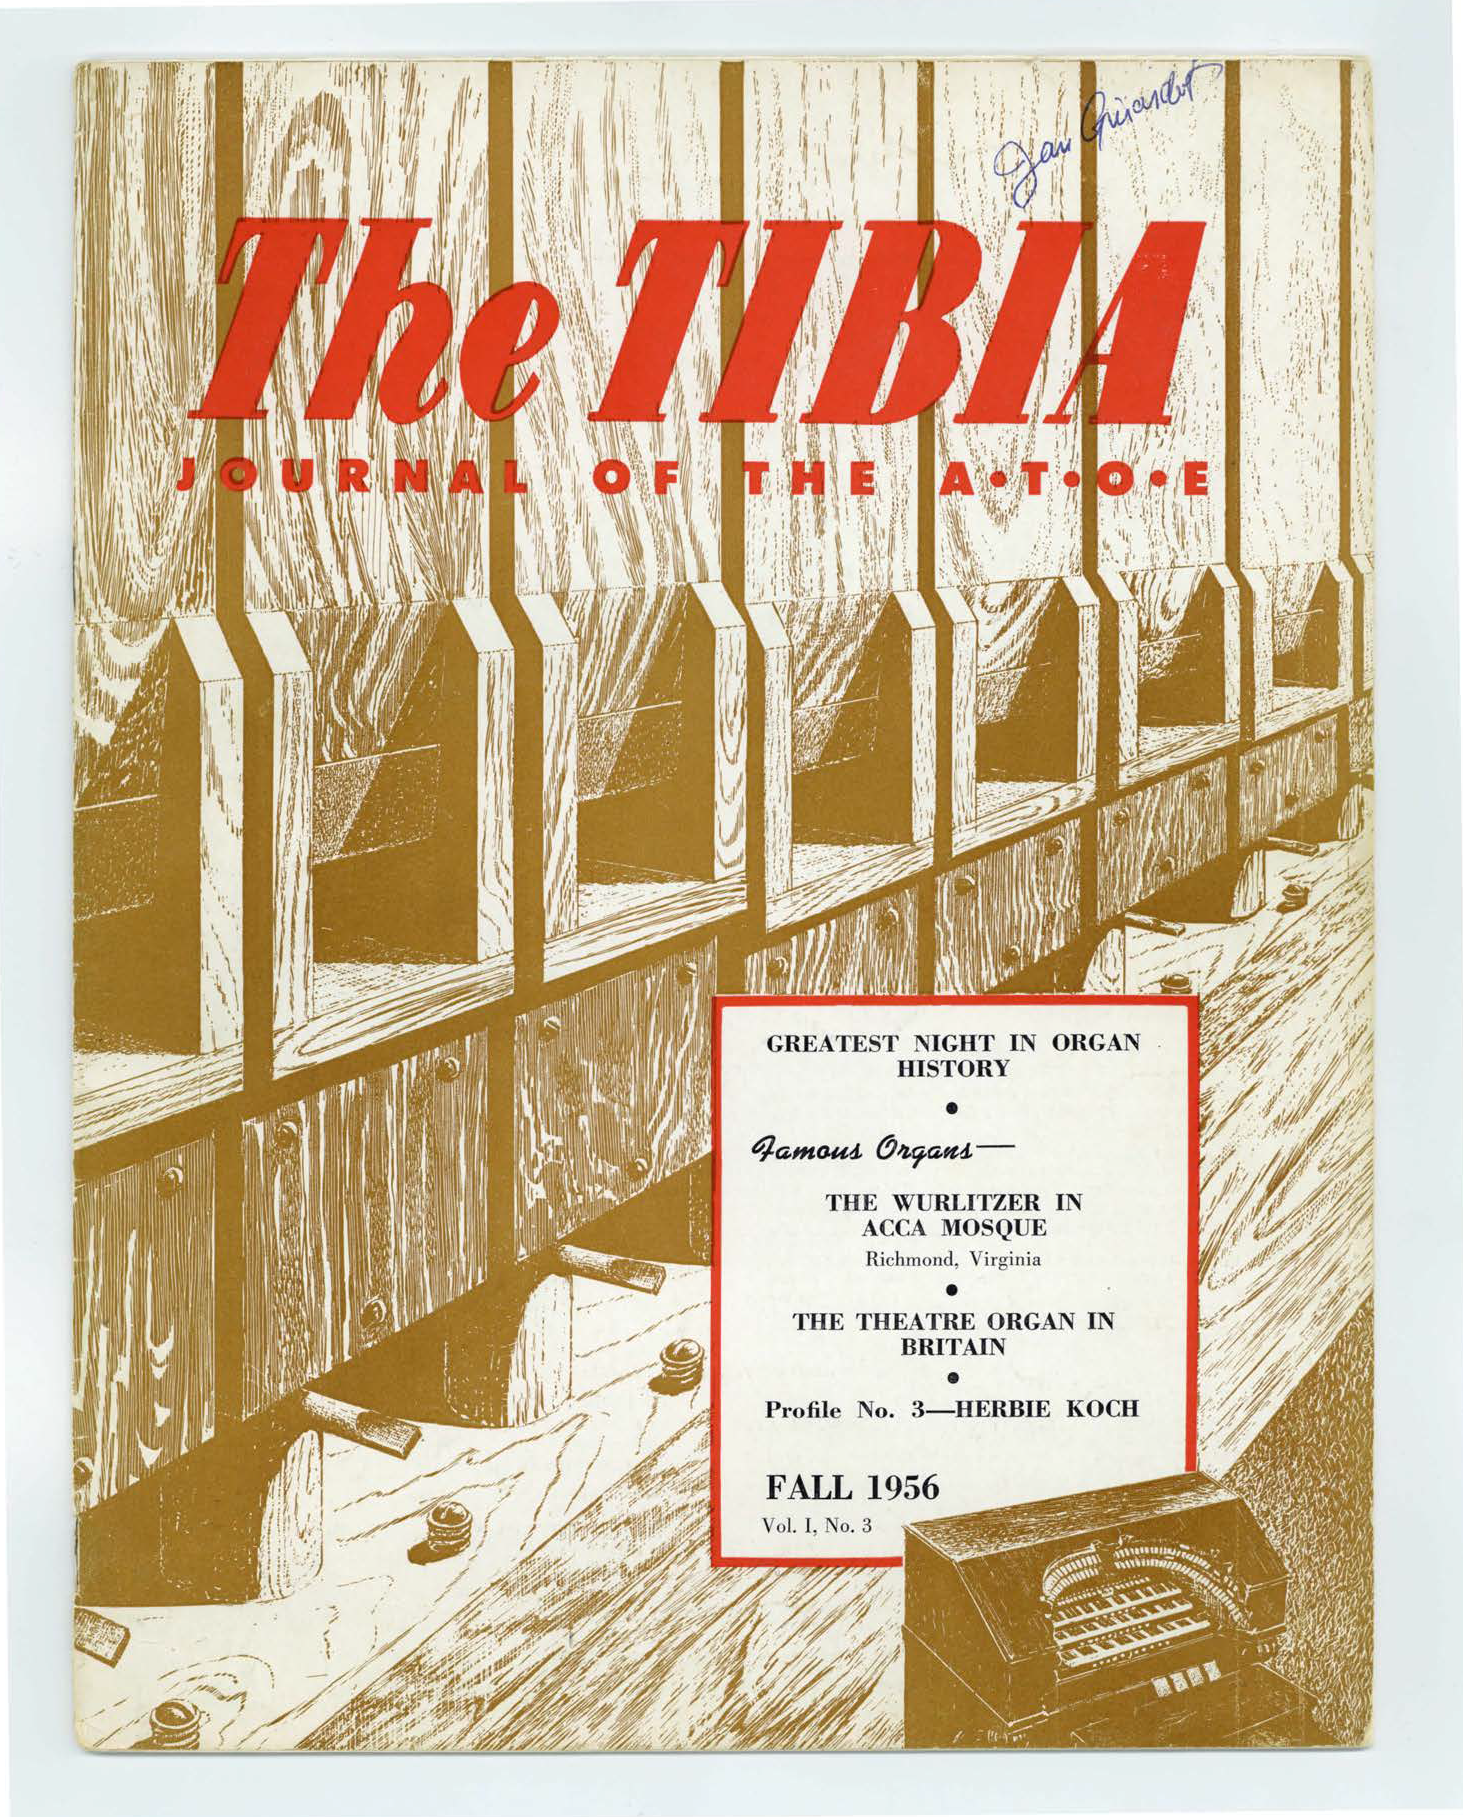 The Tibia (Theatre Organ), Fall 1956, Volume 1, Number 3